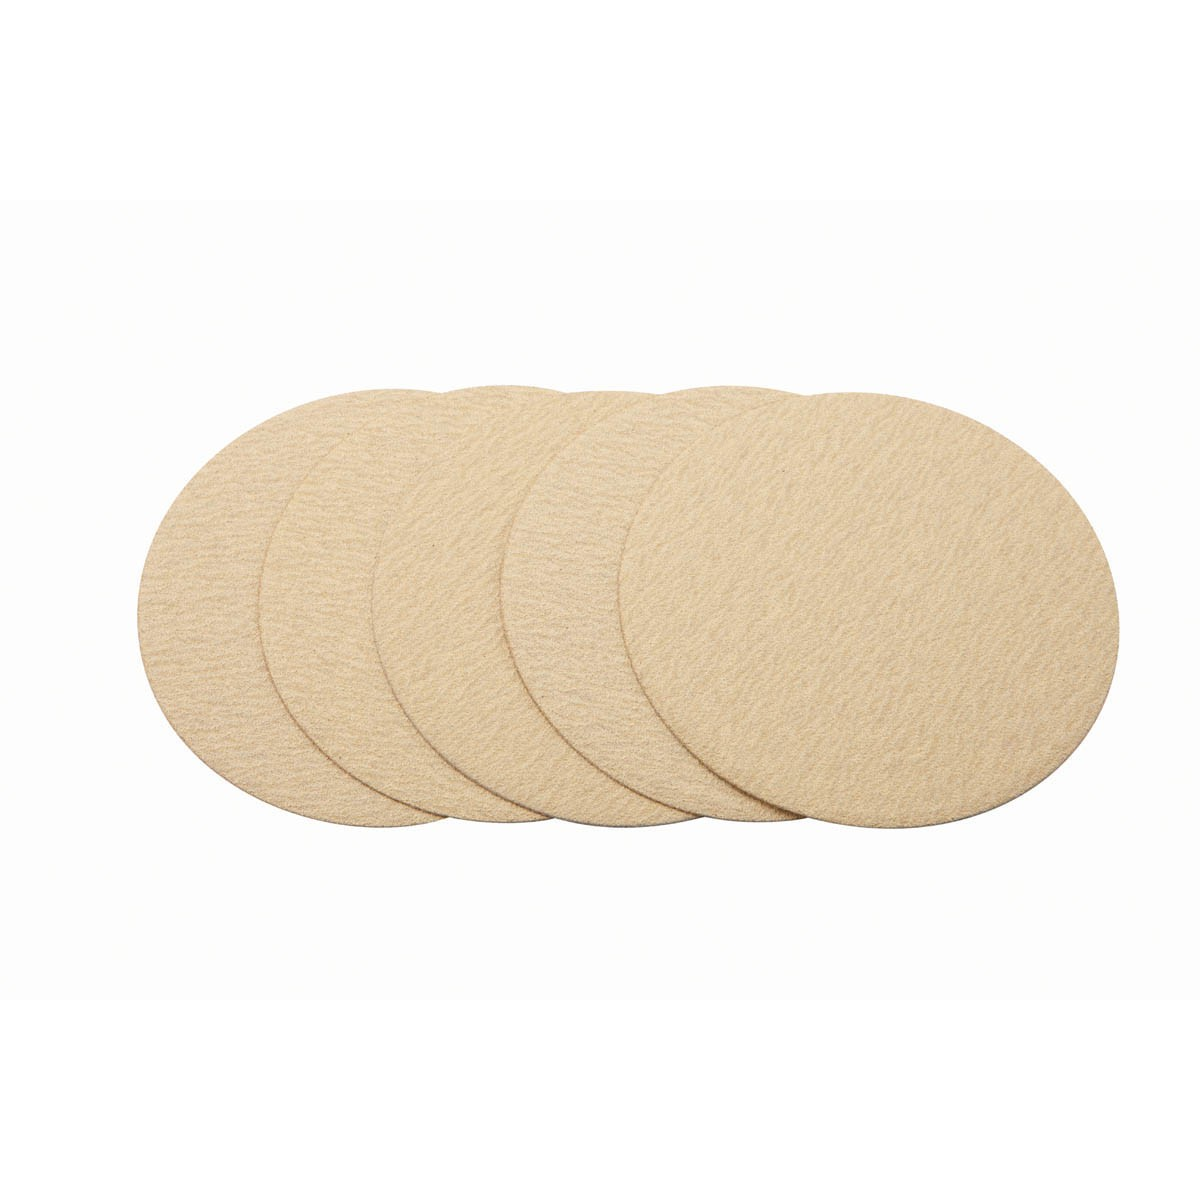 5 in. 120 Grit PSA Sanding Discs 5 Pc